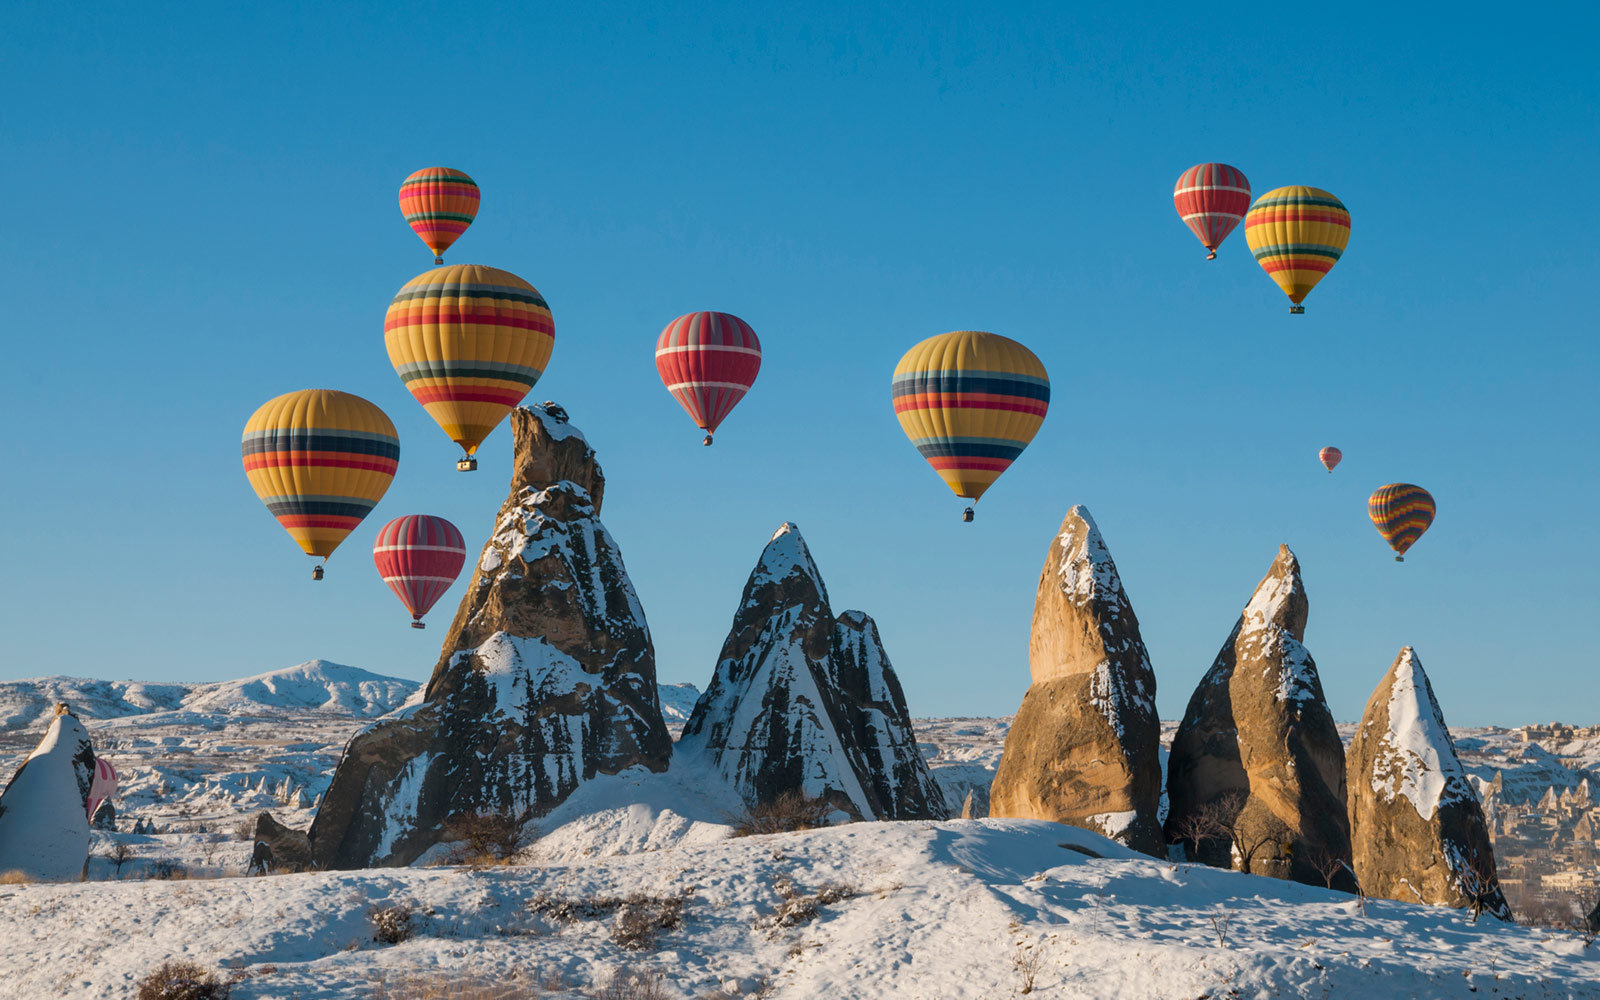 Hot Air Balloon, Nevsehir, Central Anatolia, Cappadocia, Turkey